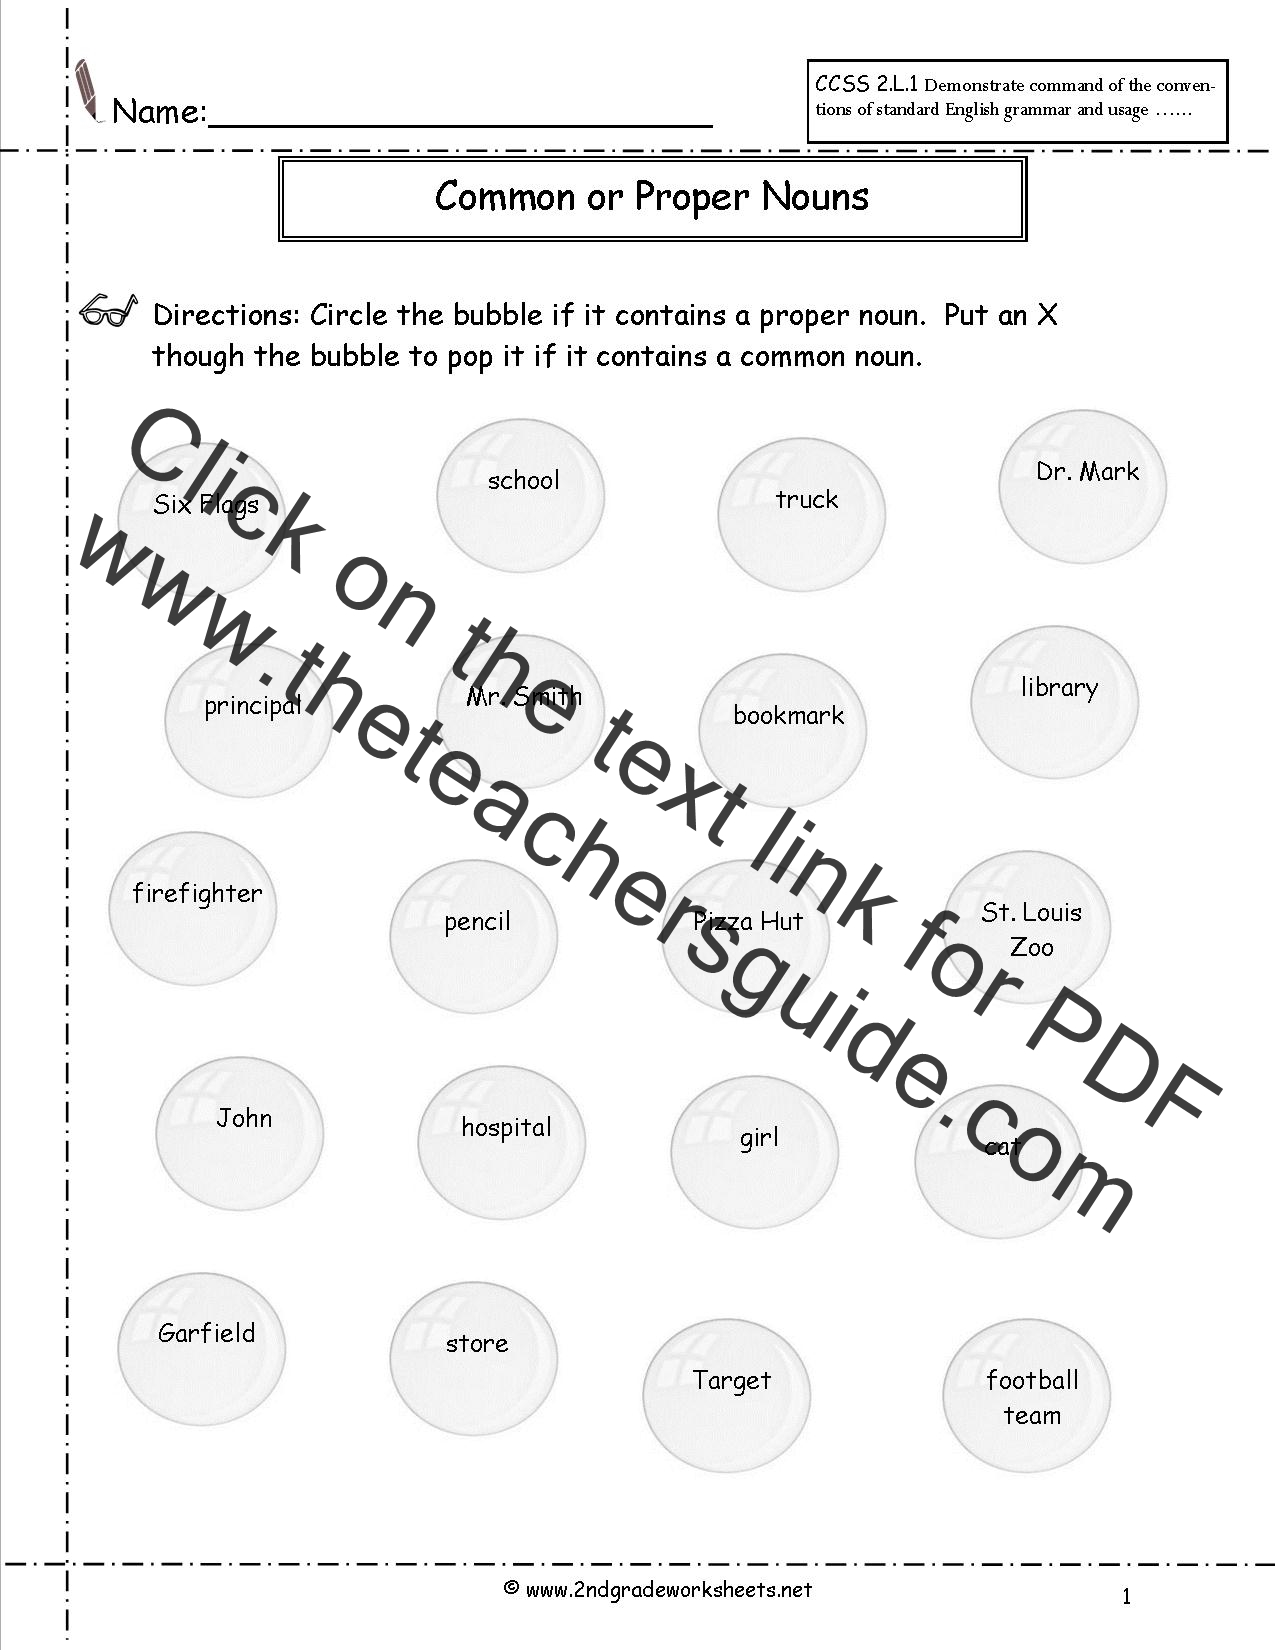 Common And Proper Nouns Worksheet Common and proper nouns